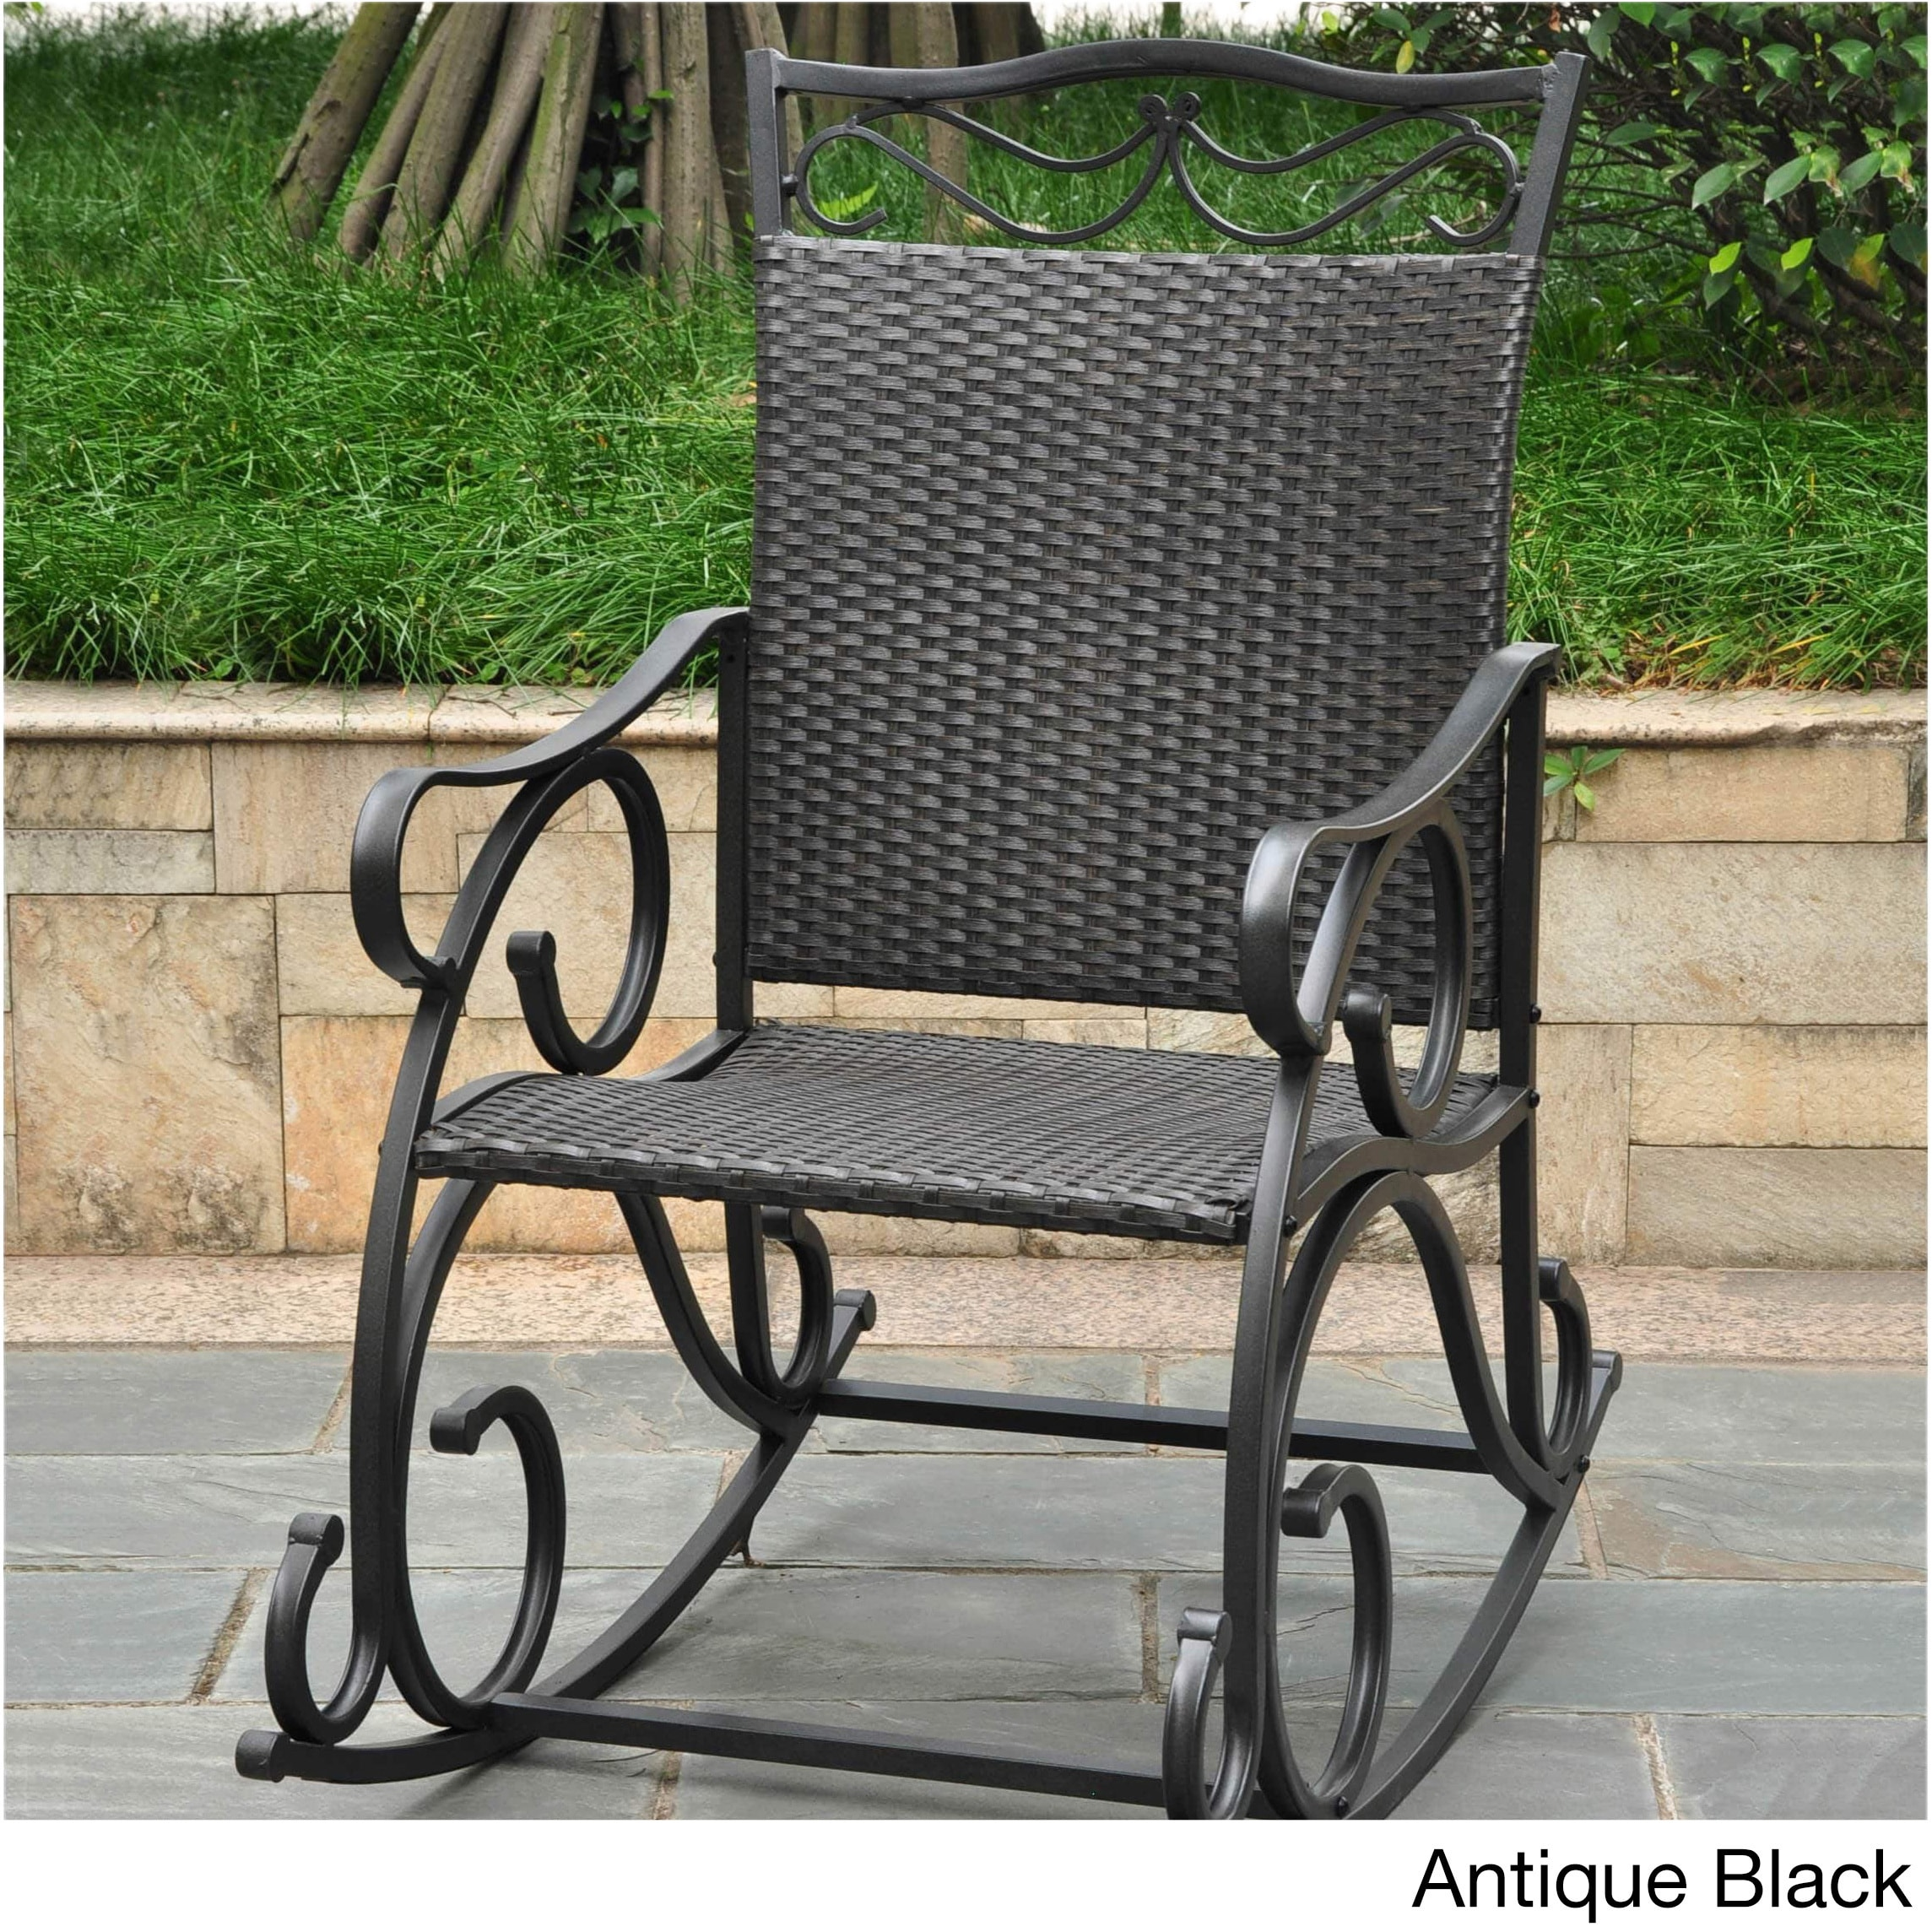 Fabulous International Caravan Valencia Resin Wicker Rocking Chair Gmtry Best Dining Table And Chair Ideas Images Gmtryco